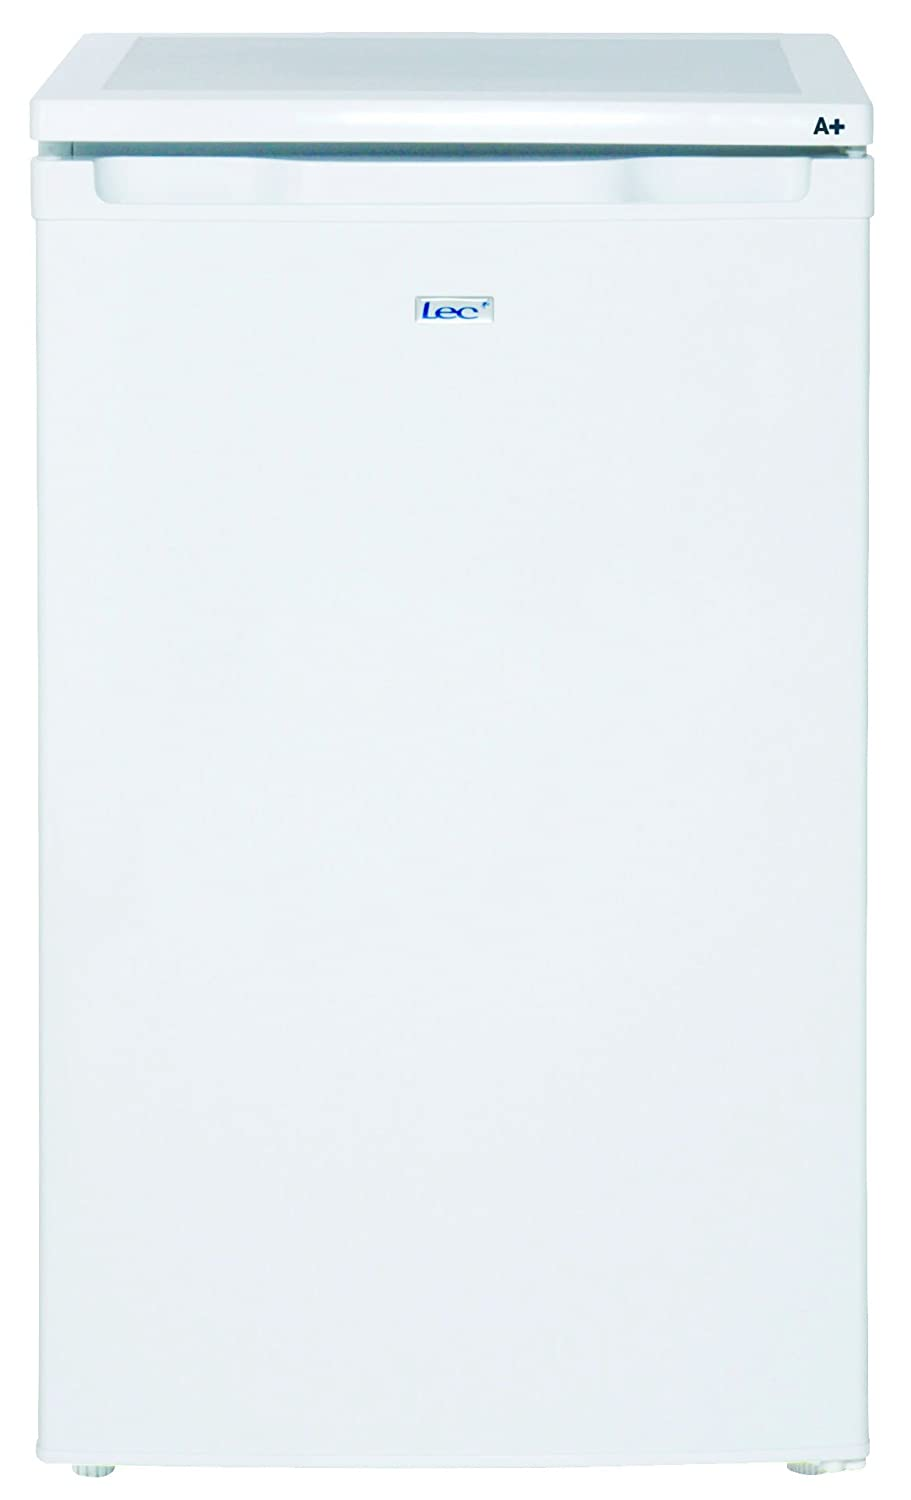 Lec R5010W 50cm undercounter fridge, A+ energy rated, 86ltr capacity, white [Energy Class A+] LECR5010W